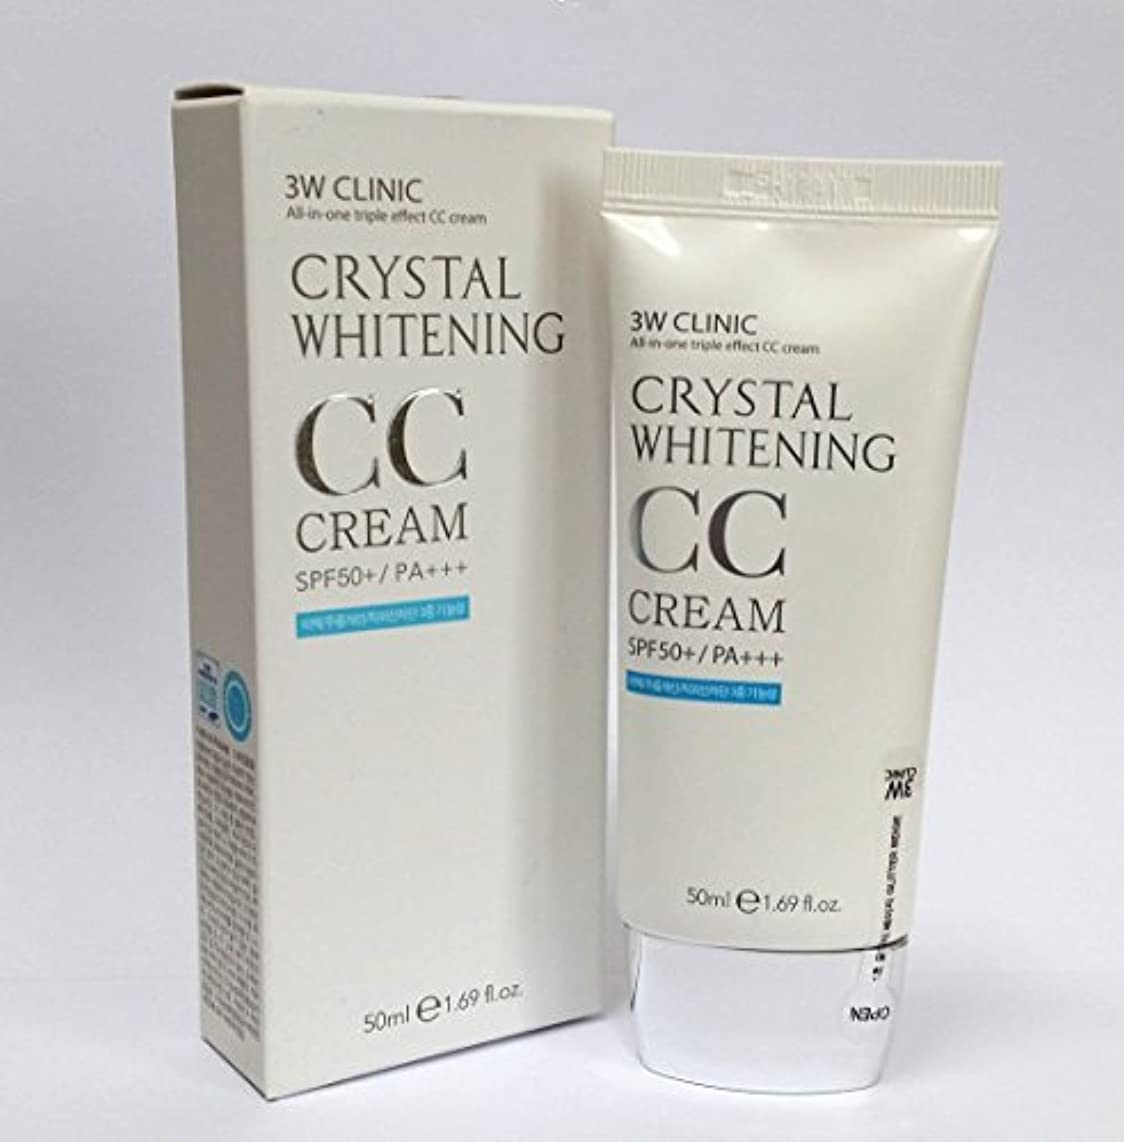 経過頬年金[3W CLINIC] クリスタルホワイトニングCCクリーム50ml SPF50 PA +++ / #01 Glitter Beige/Crystal Whitening CC Cream 50ml SPF50 PA++...